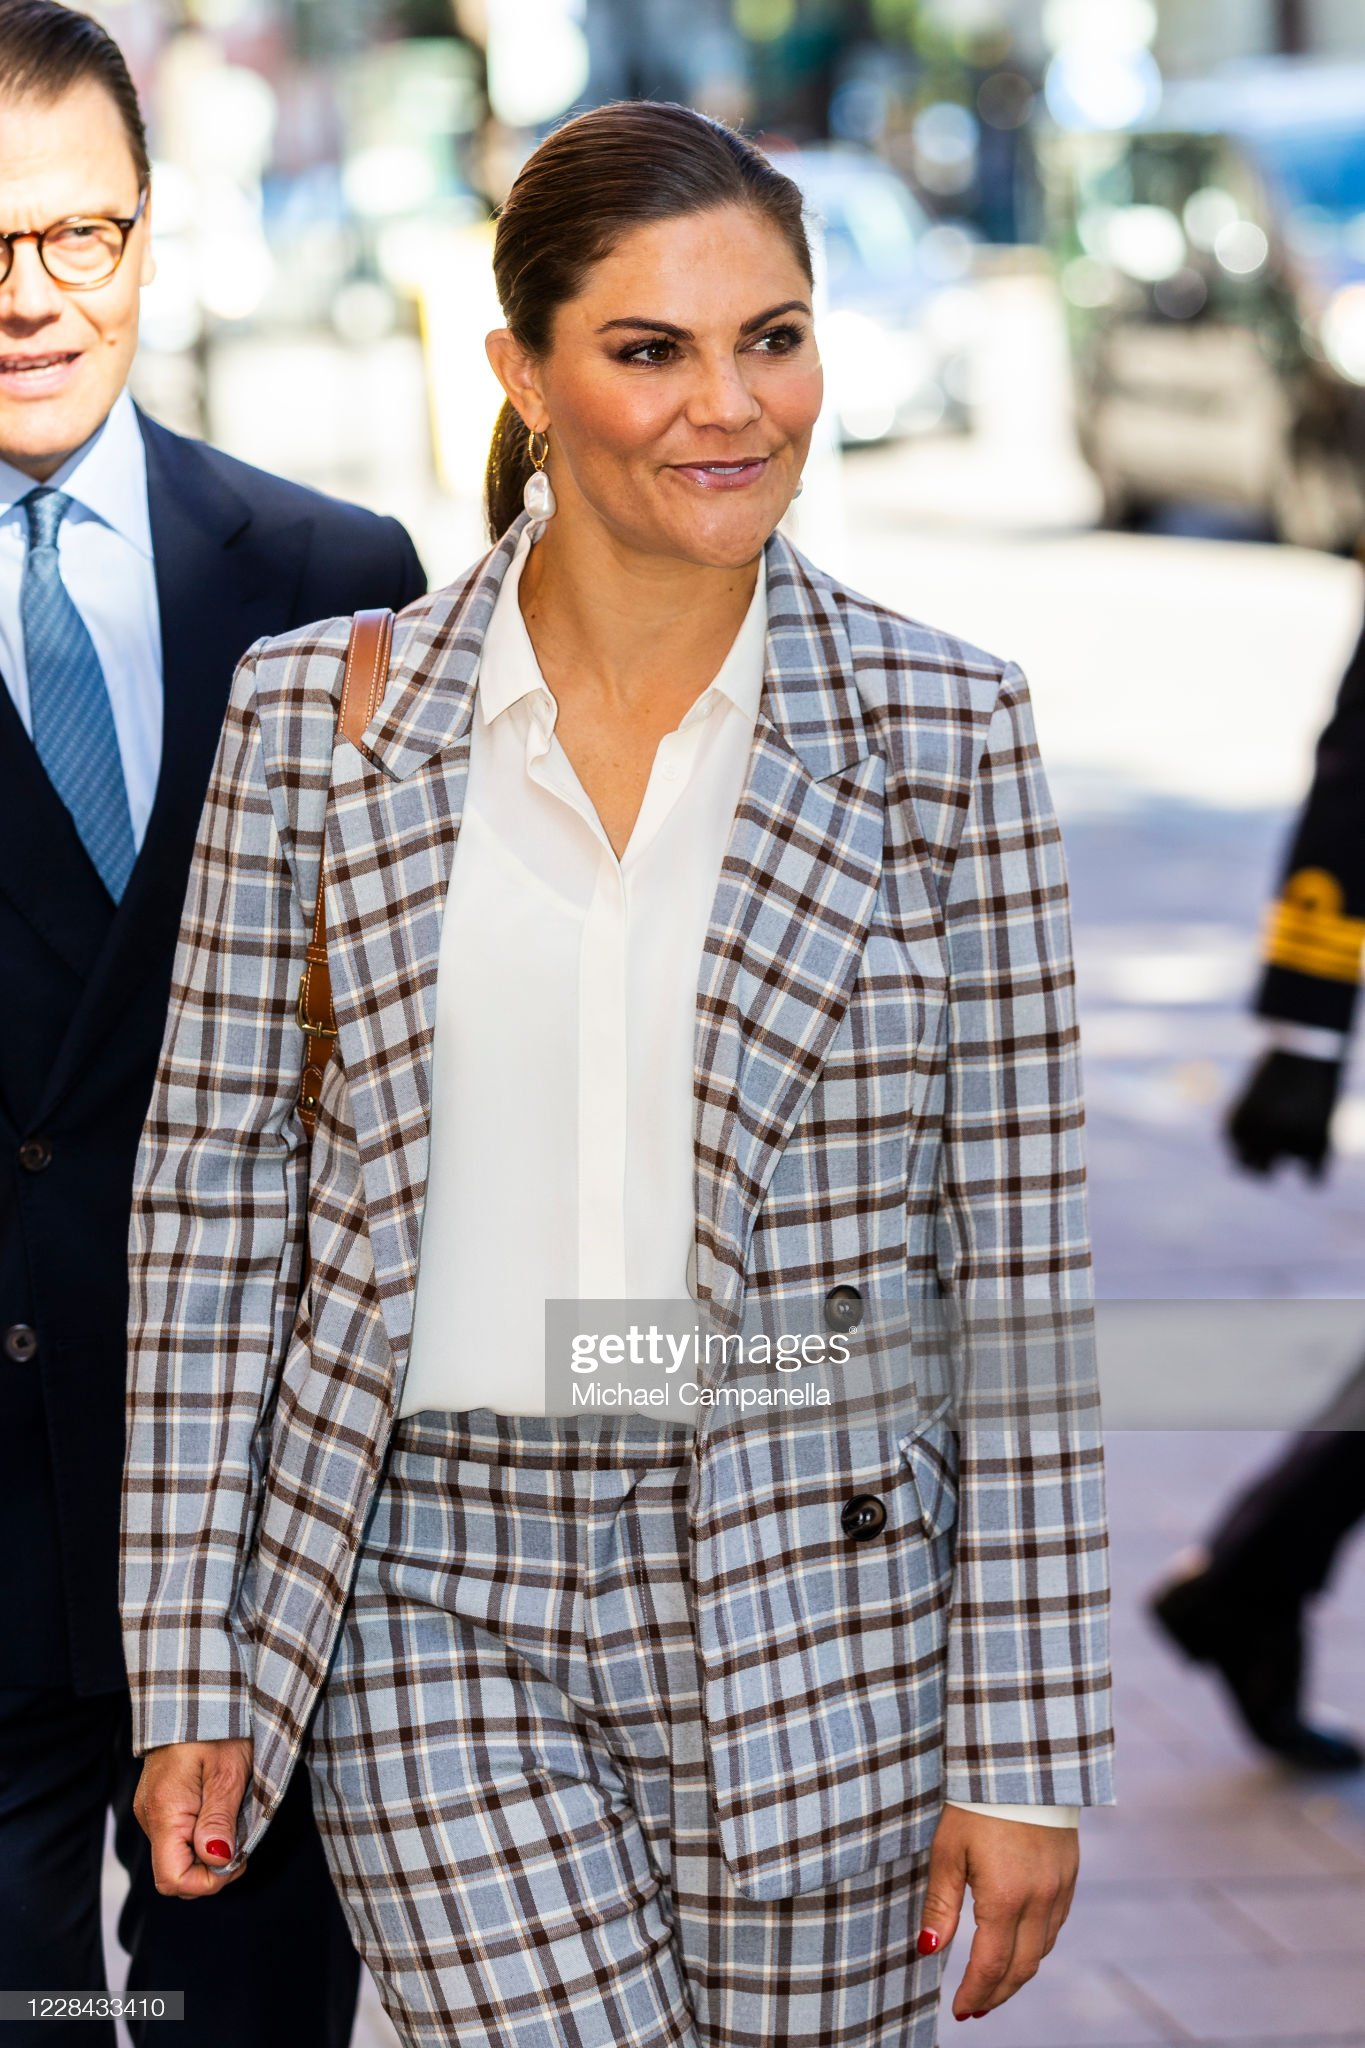 crown-princess-victoria-and-prince-daniel-of-sweden-visit-the-swedish-picture-id1228433410